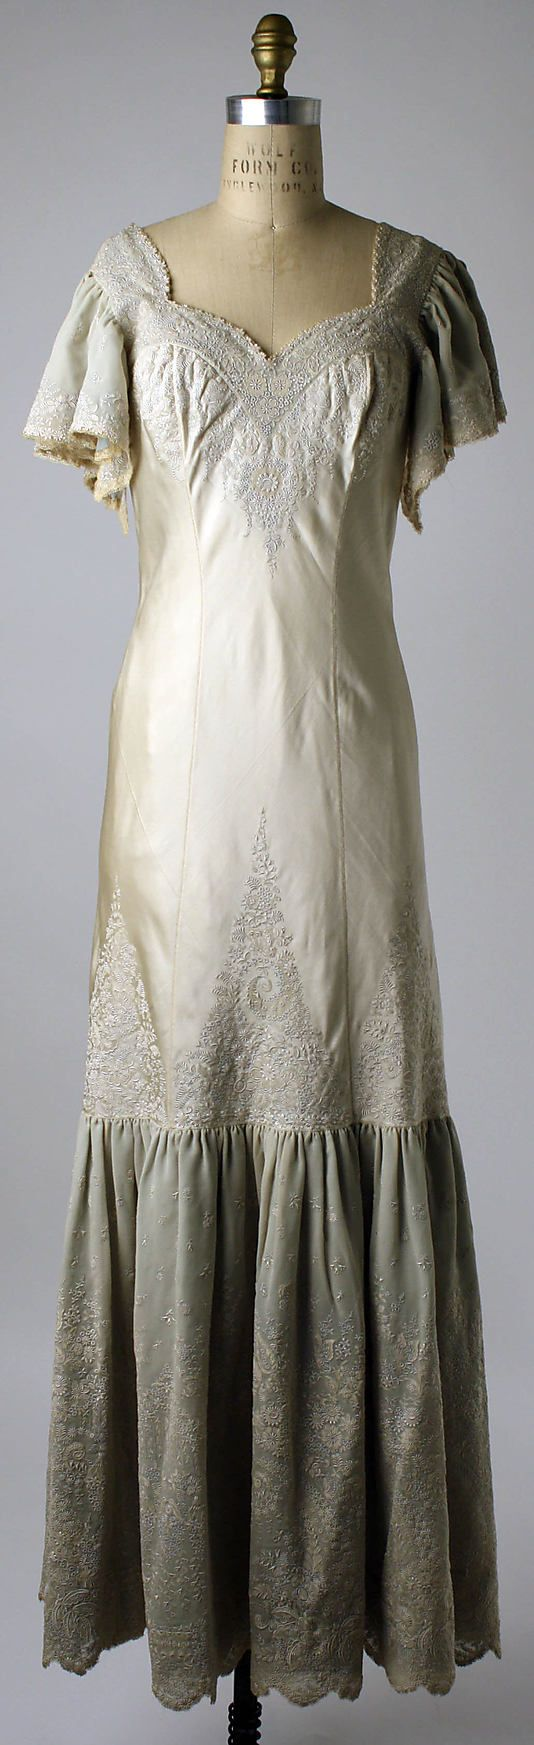 Embroidered silk nightgown, Chinese, early 1920s. Worn by Mrs. Herbert Sage Mesick